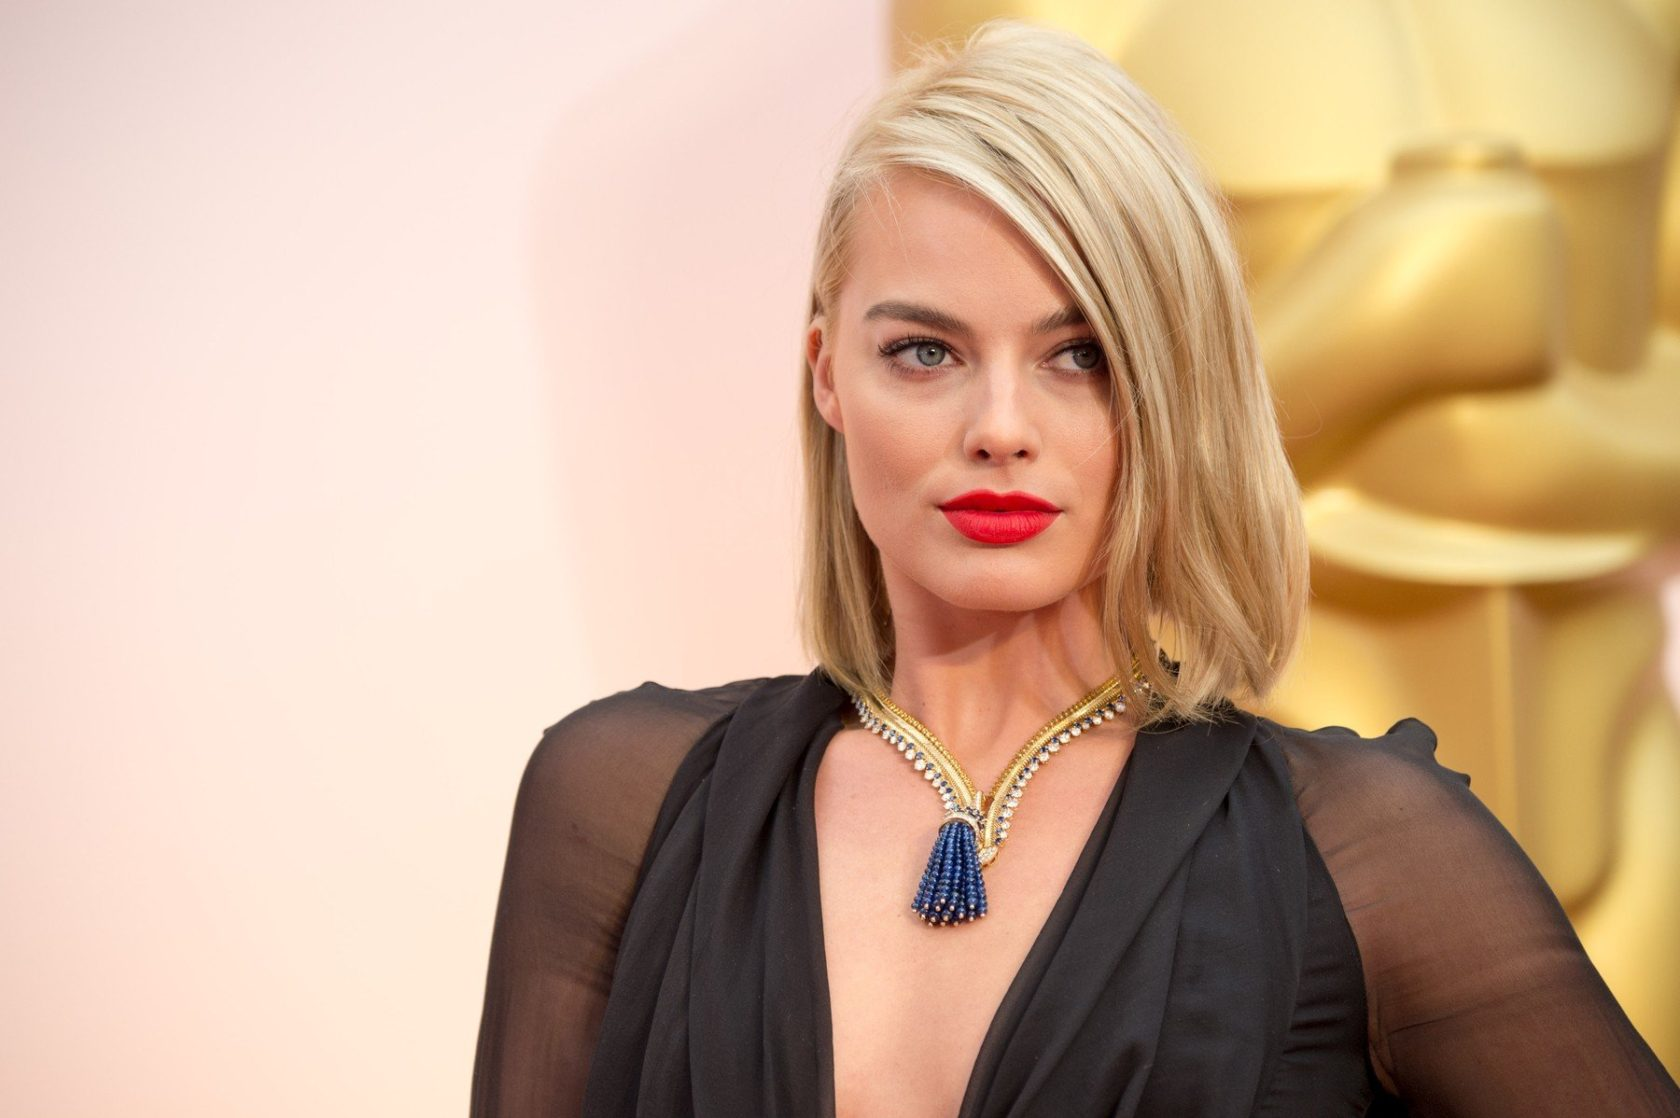 NOT FOR COVER USAGE. Margot Robbie, Oscar presenter, arrives for the live ABC Telecast of The 87th Oscars at the Dolby Theatre in Hollywood, CA on Sunday, February 22, 2015., Image: 231116773, License: Rights-managed, Restrictions: EDITORIAL USE ONLY. NO COVER USAGE. Camera Press provides this publicly distributed image for editorial purposes and is not the copyright owner. Additional permissions may be required and clearing such rights are the sole responsibility of the end user., Model Release: no, Credit line: Profimedia, TEMP Camerapress